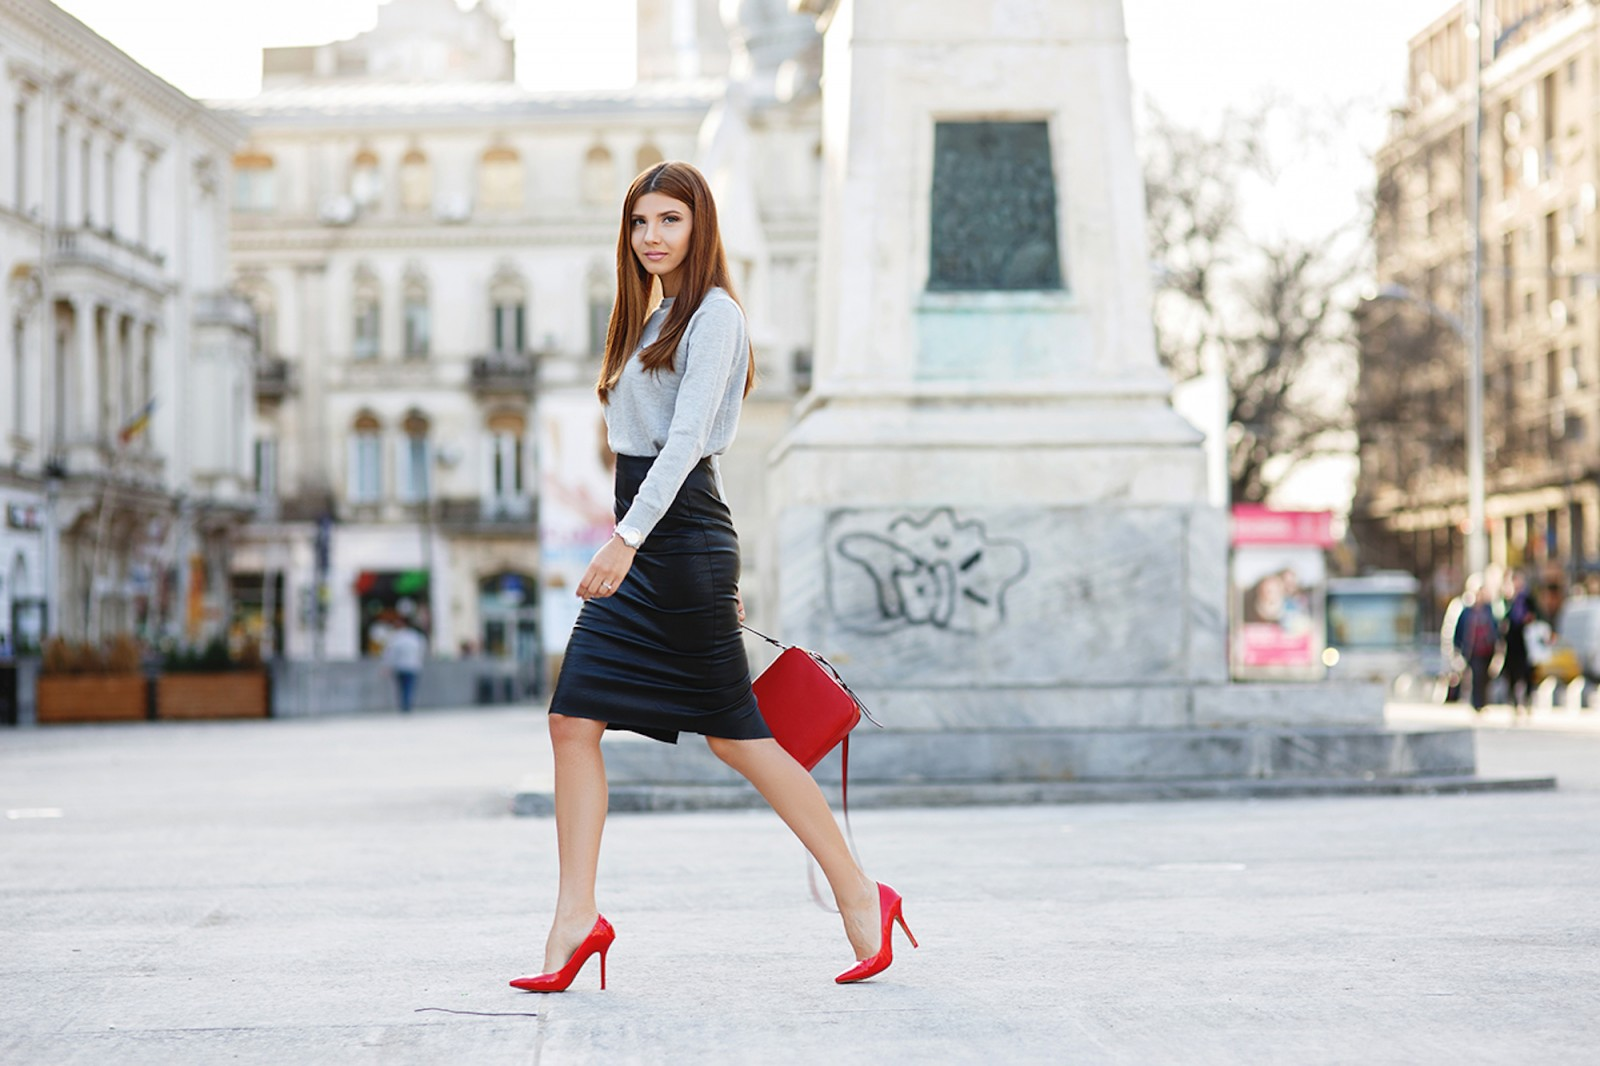 French Chic is all about decoding the Secrets of Paris Fashion, like this Parisian woman who's teamed a black pencil skirt with a long-sleeved shirt, and matched her red heels with her red handbag.